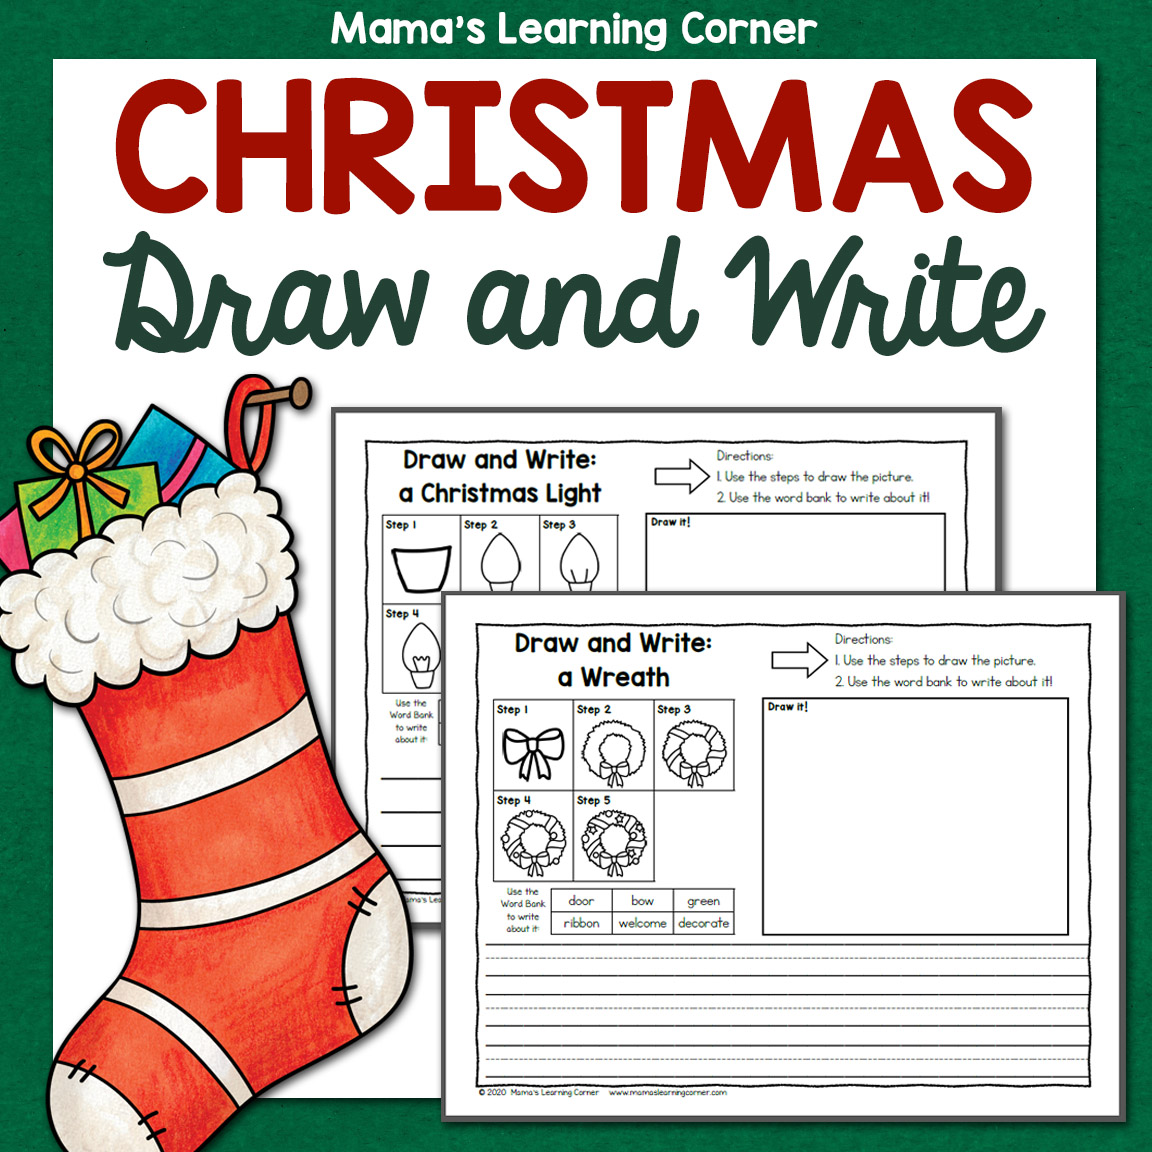 Christmas Directed Draw And Write Worksheets